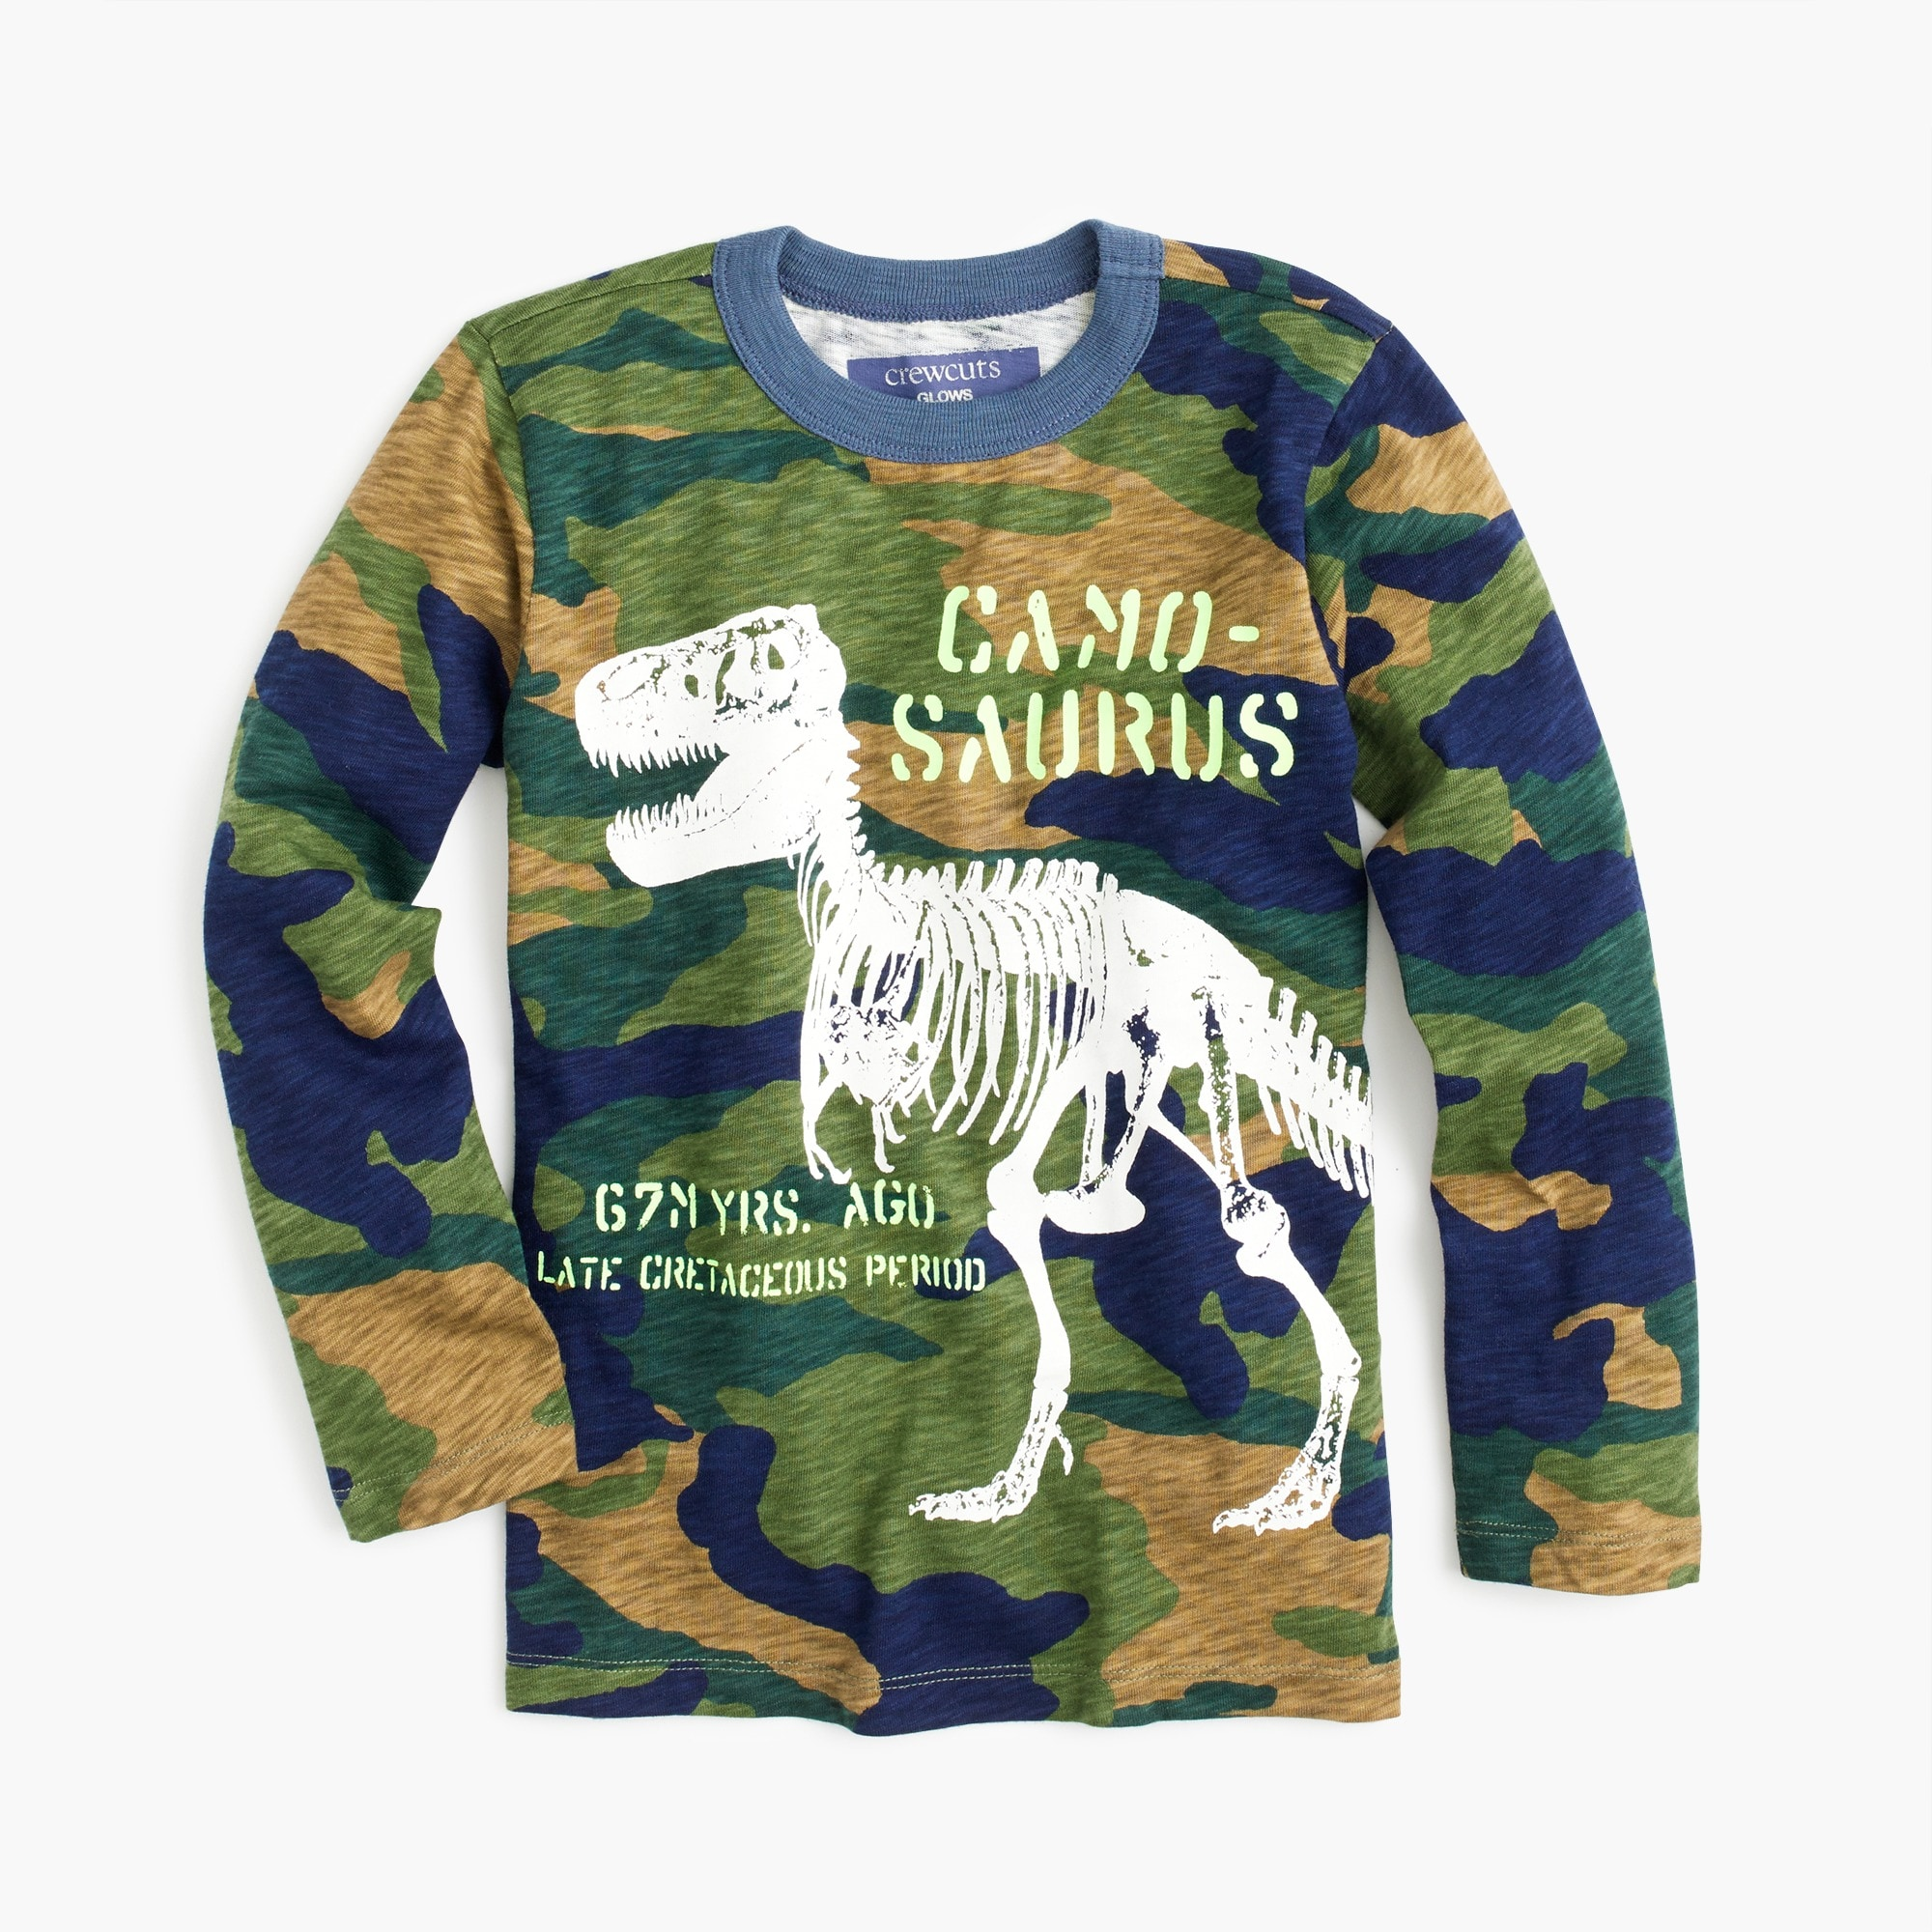 "boys' long-sleeve glow-in-the-dark ""camosaurus"" t-shirt : boy t-shirts & polos"